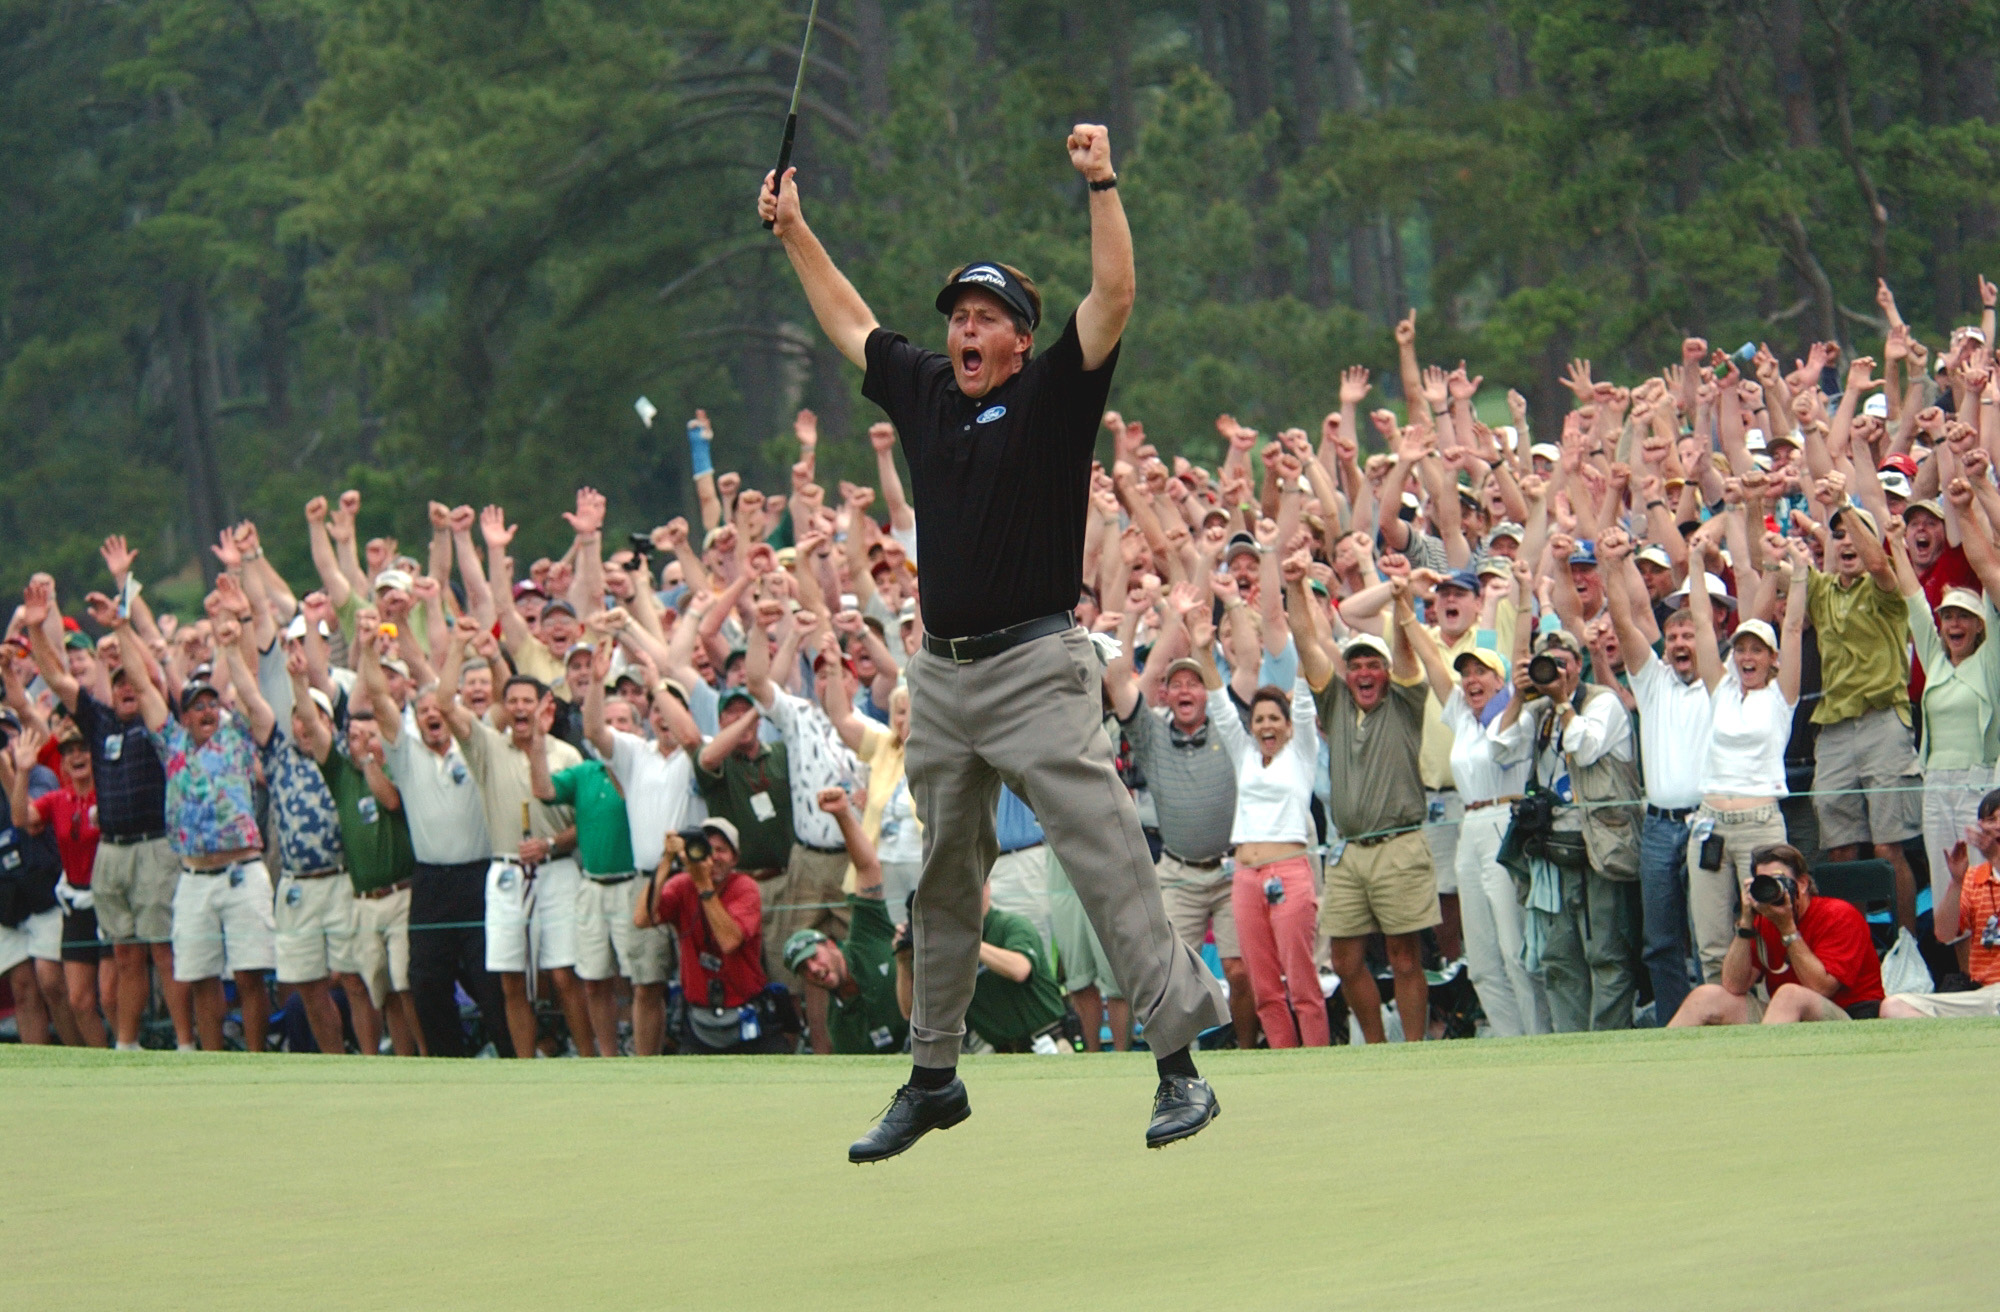 Phil Mickelson celebrates after winning the 2004 Masters.